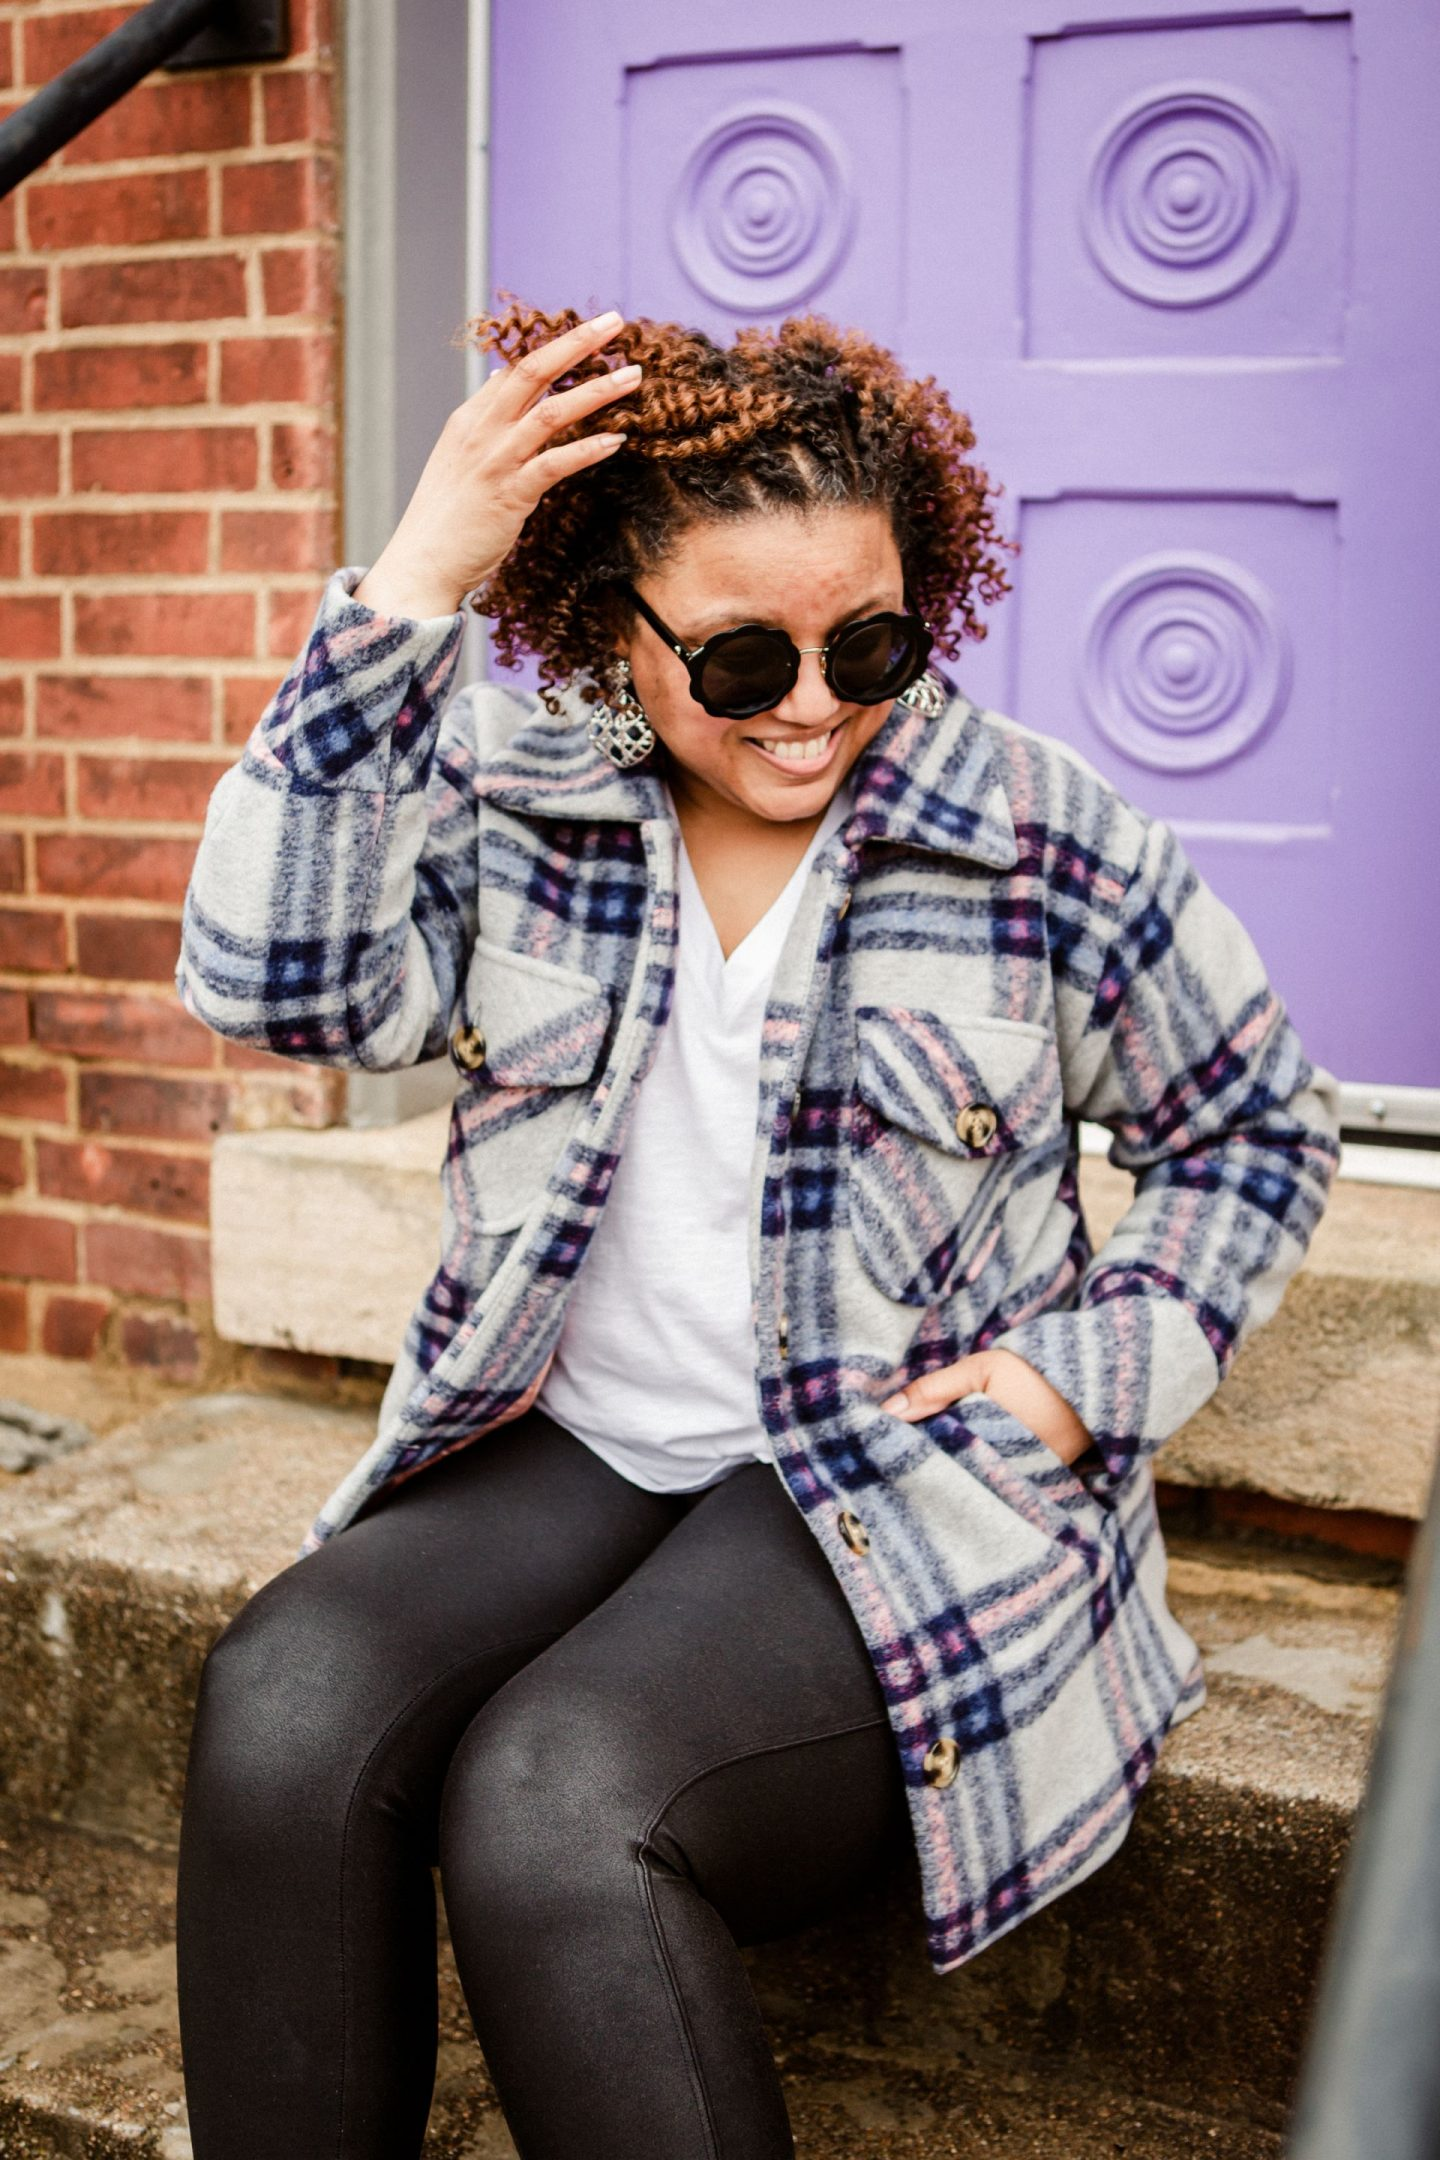 Plaid Shackets by popular Kentucky fashion blog, Really Rynetta: image of a woman sitting in front of a brick building with a purple door and wearing a plaid shacket with a white t-shirt and faux leather leggings.